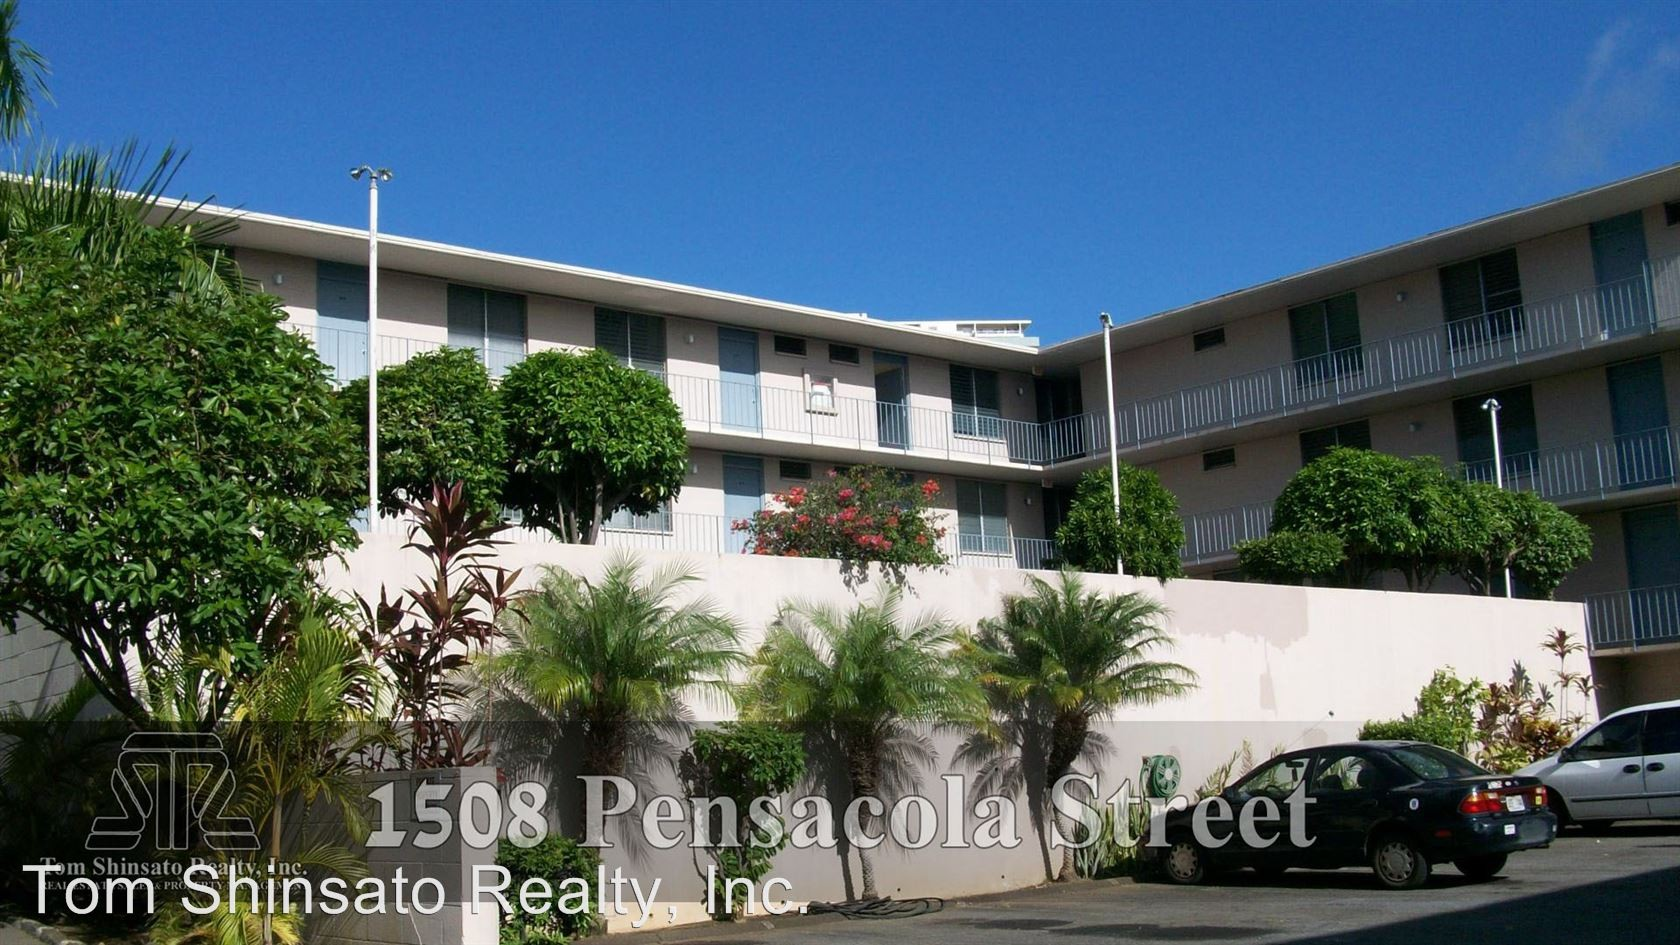 1508 pensacola st honolulu hi 96822 1 bedroom apartment - 1 bedroom apartment salt lake hawaii ...